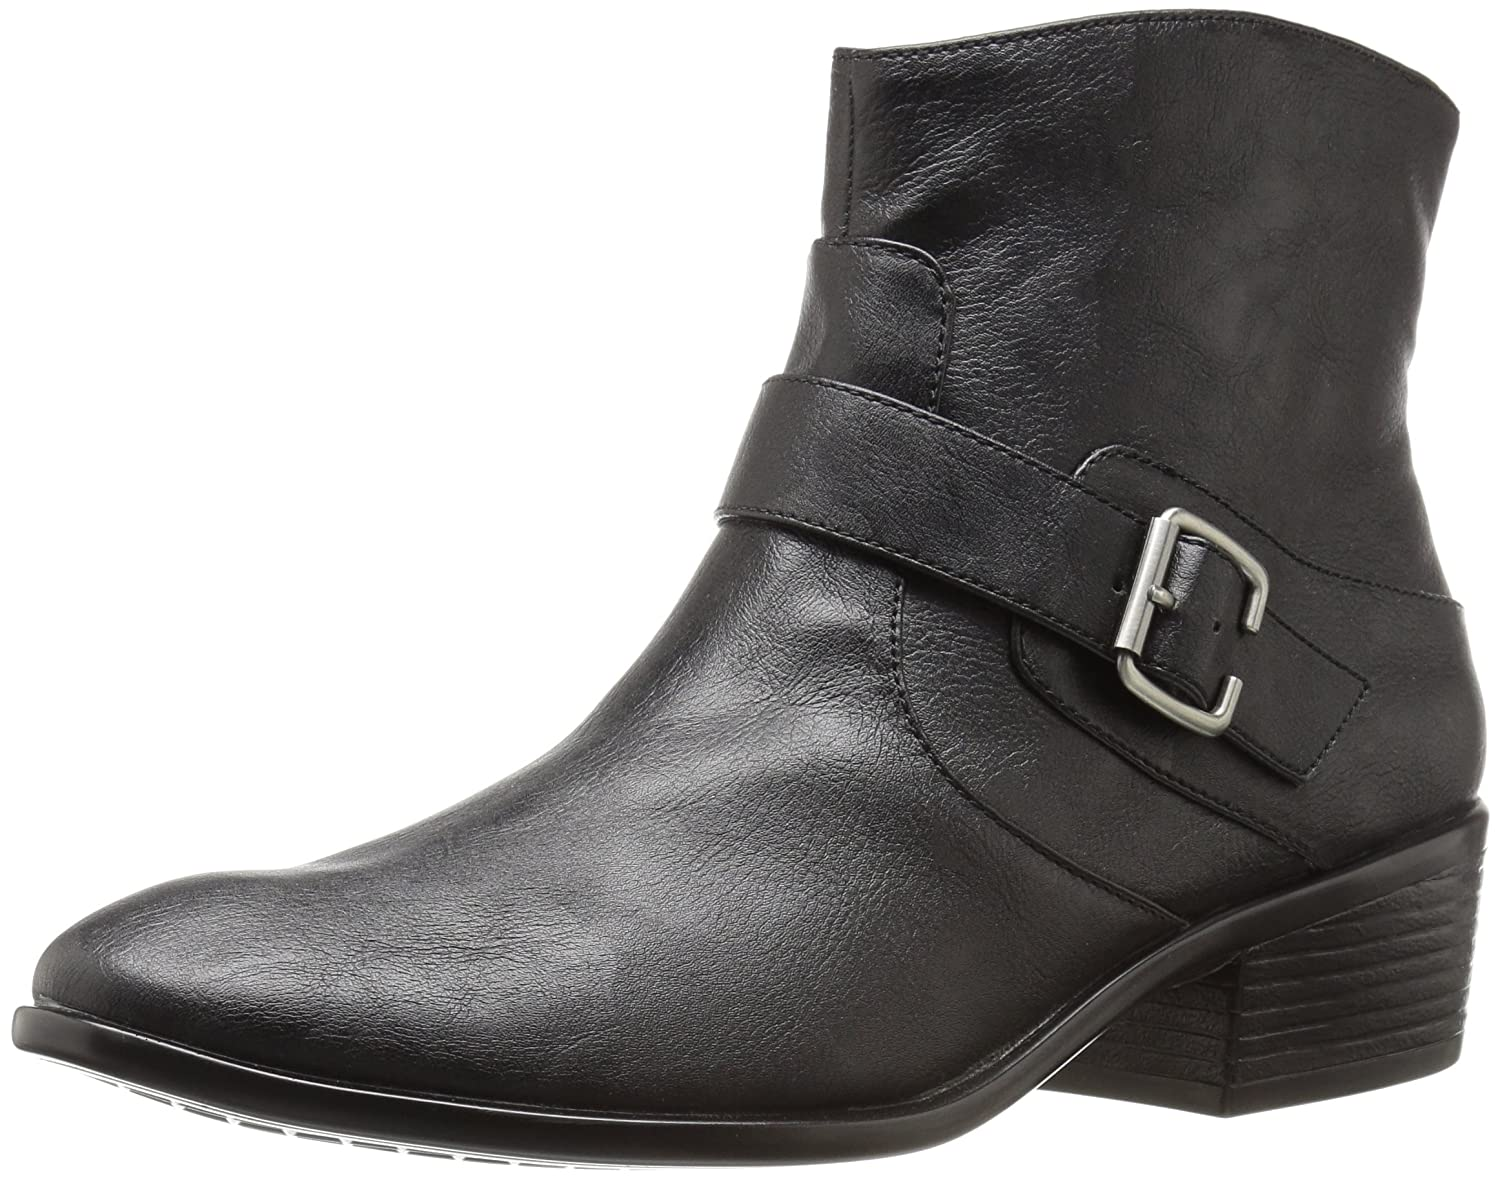 Aerosoles A2 by Women's My Way Boot B01DB8AQ10 8 B(M) US|Black